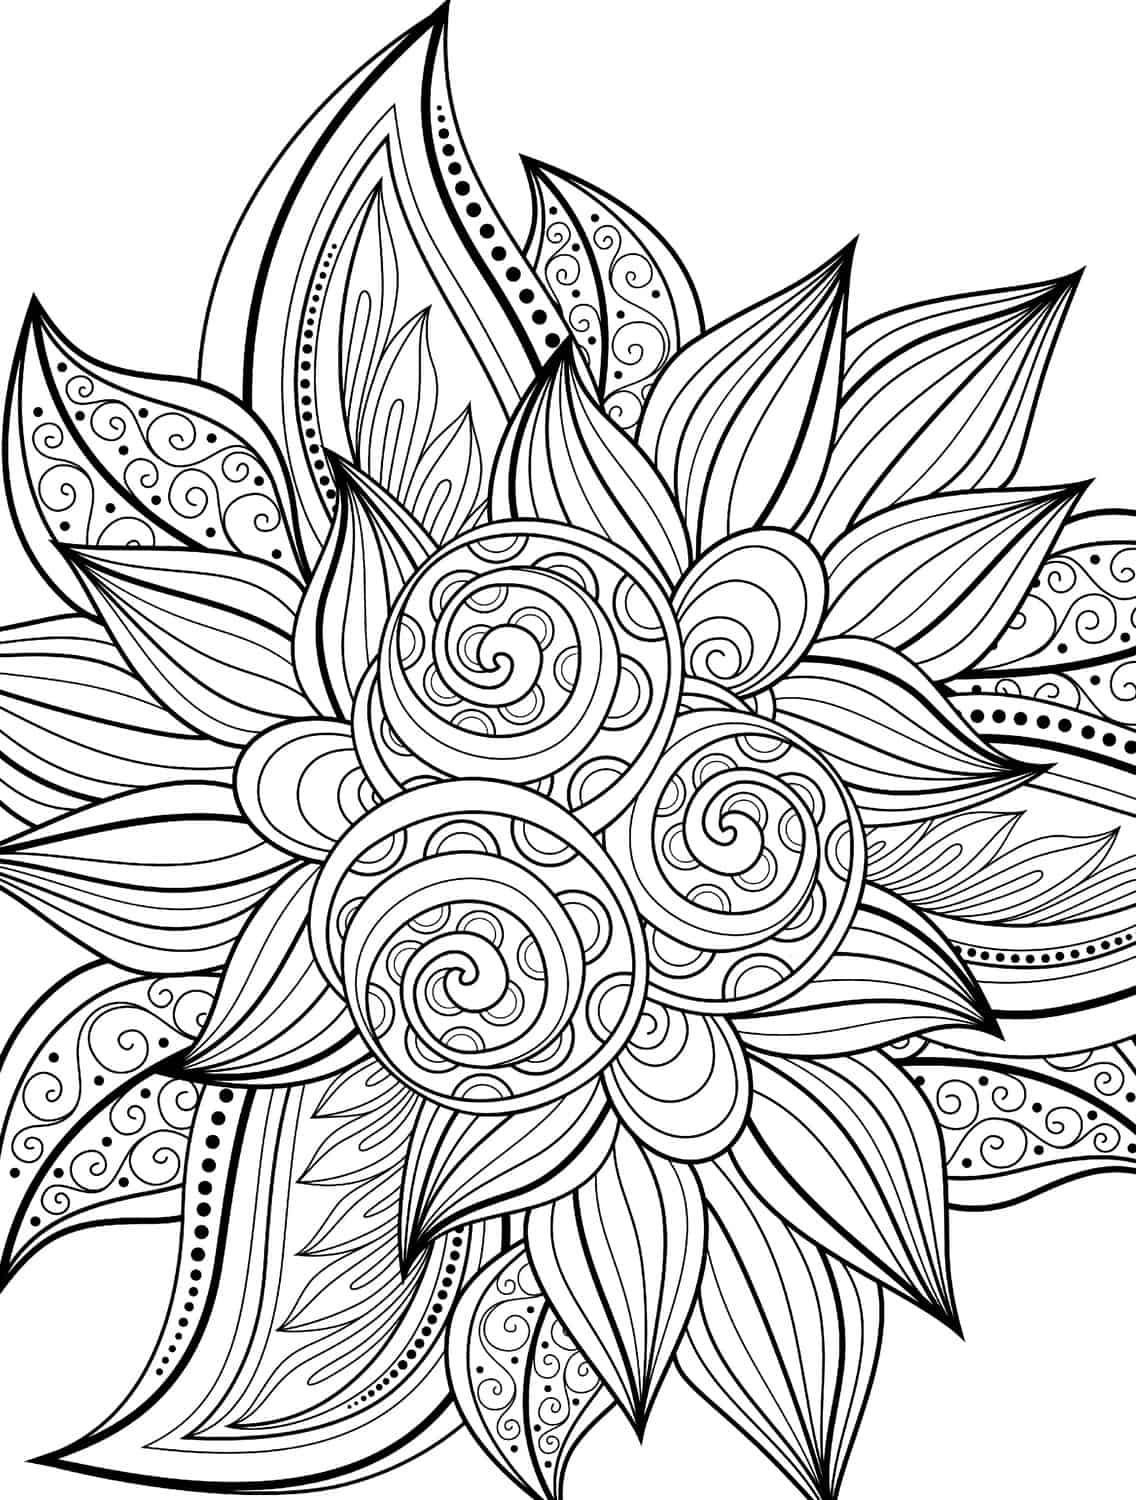 awesome coloring pages to print coloring pages really cool free printable coloring pages print pages coloring awesome to